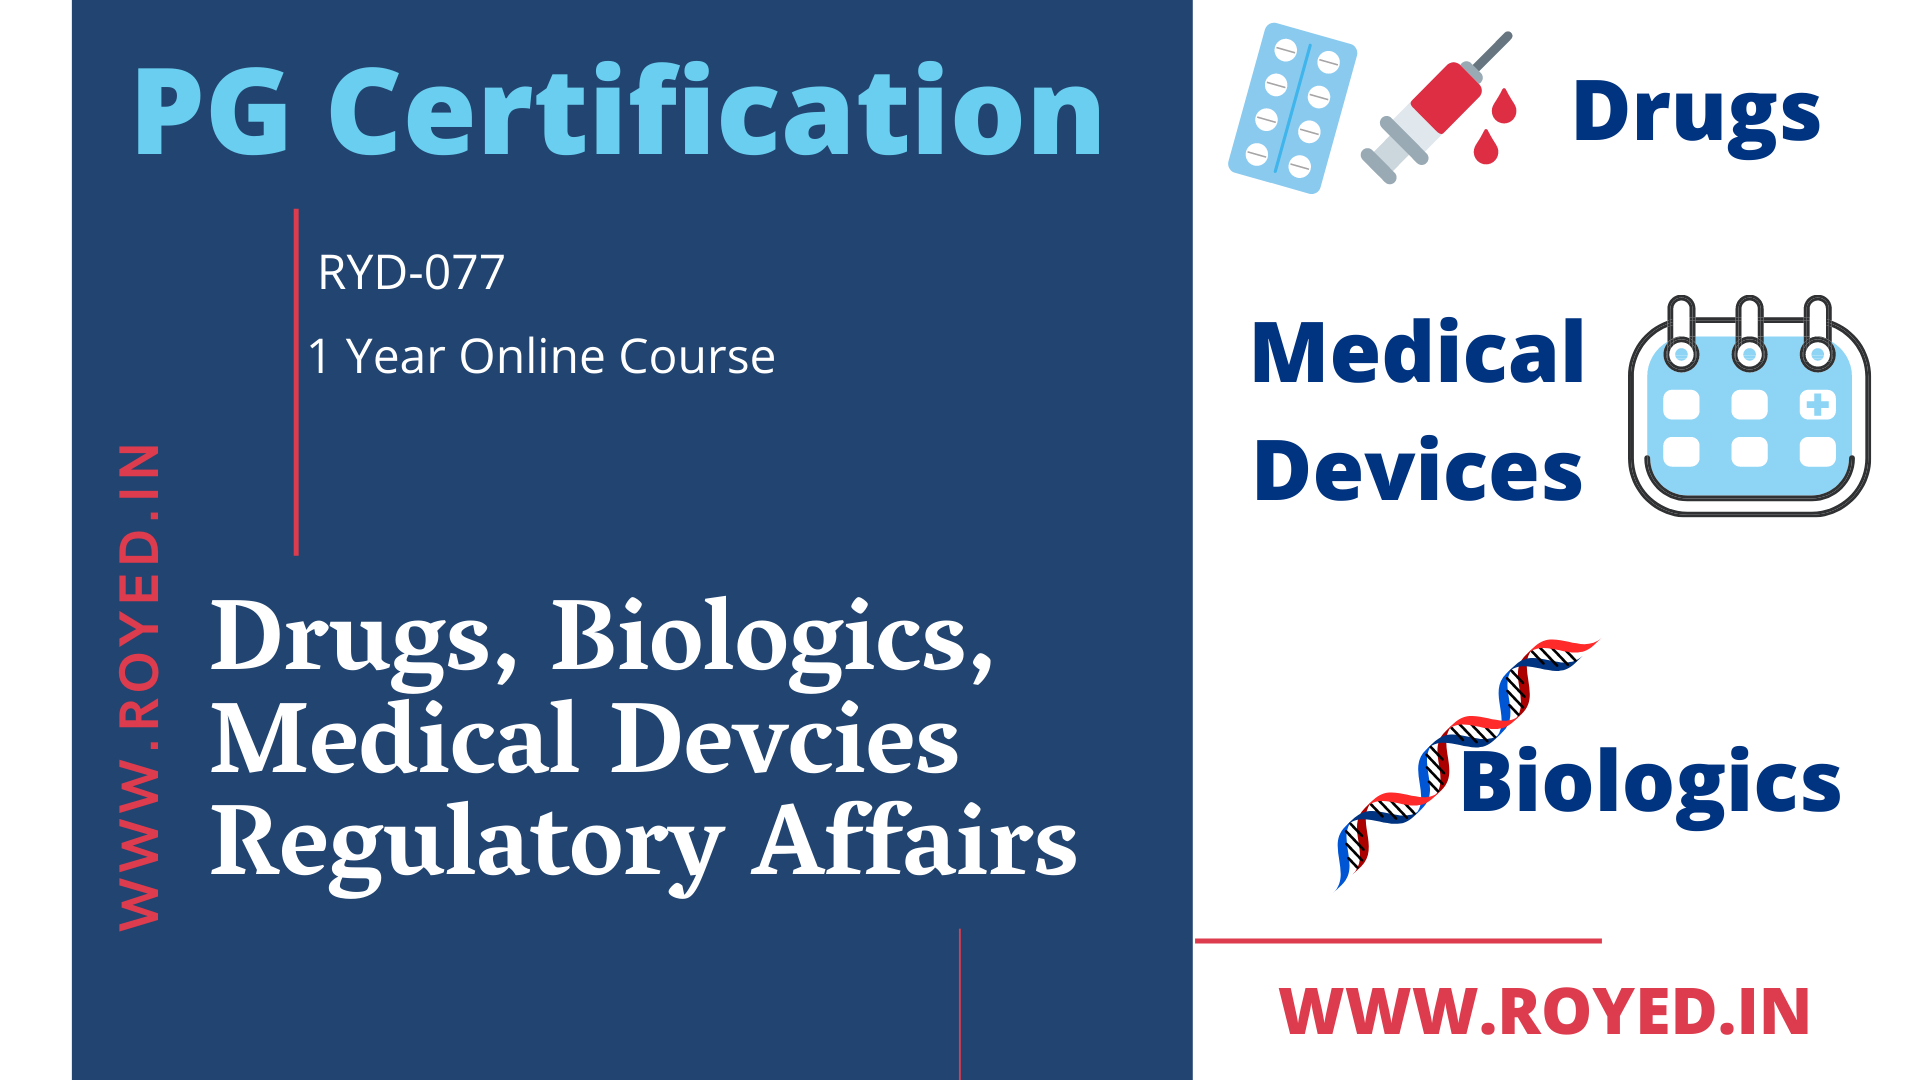 drugs biologics medical devices regulatory affairs coruse